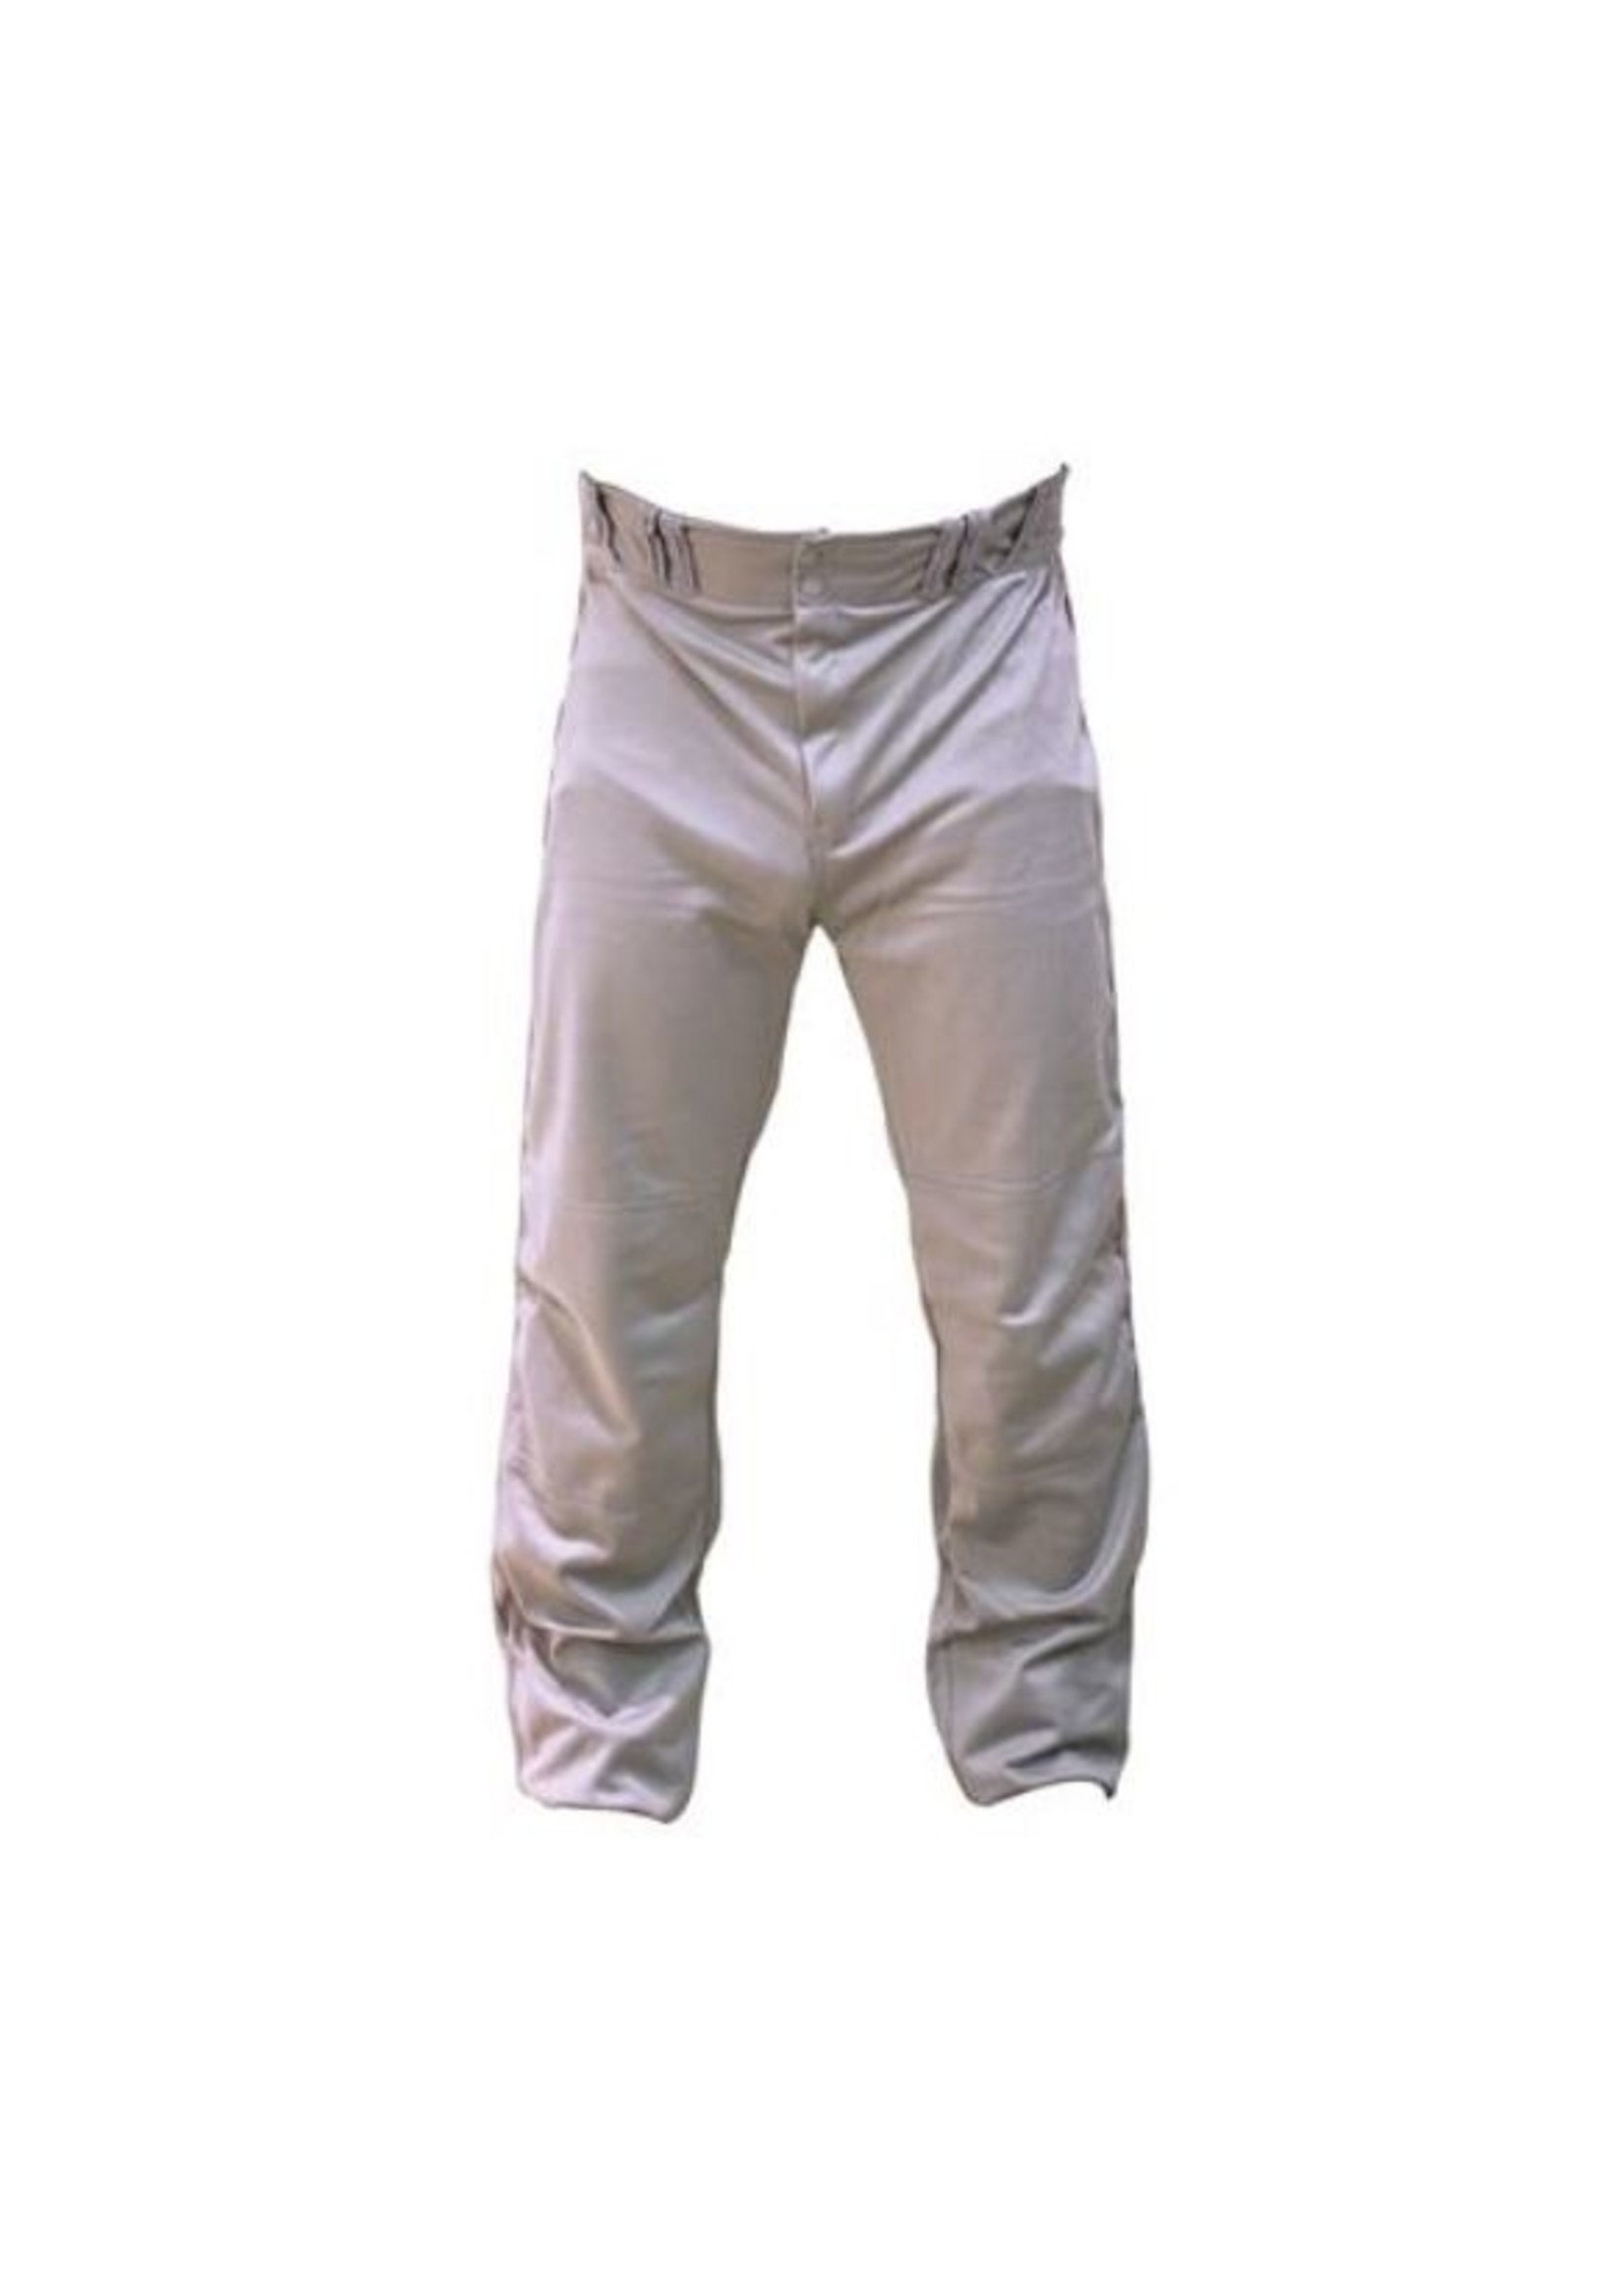 Louisville (Canada) LOUISVILLE STOCK PANT WITH PIPING JR BASEBALL PANTS